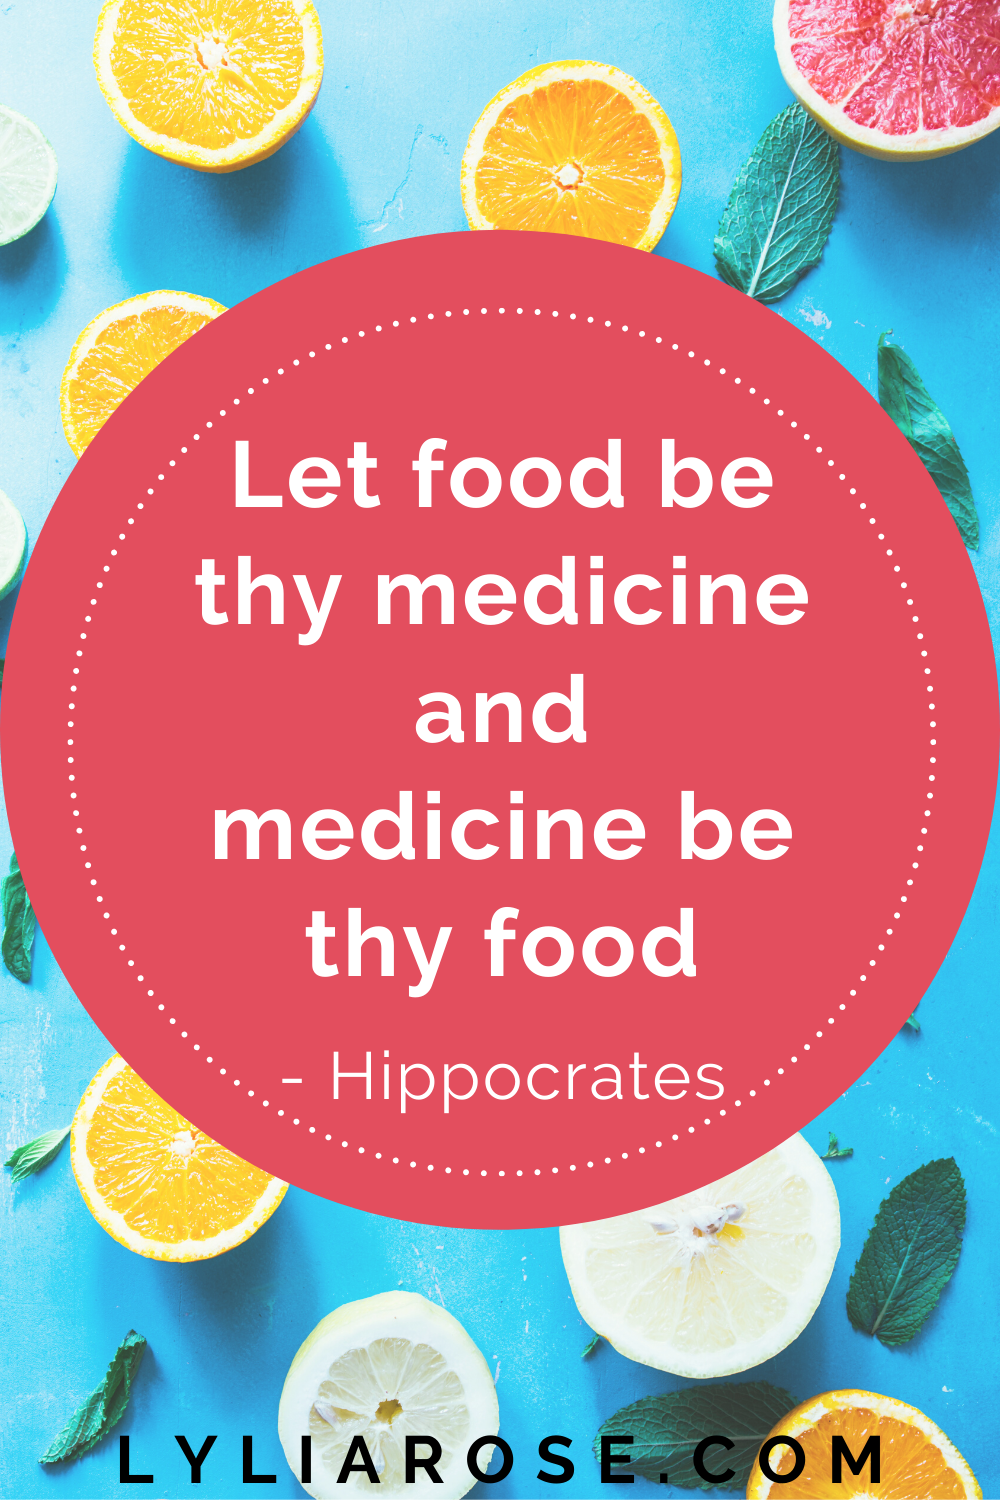 Let food be thy medicine and medicine be thy food - Hippocrates